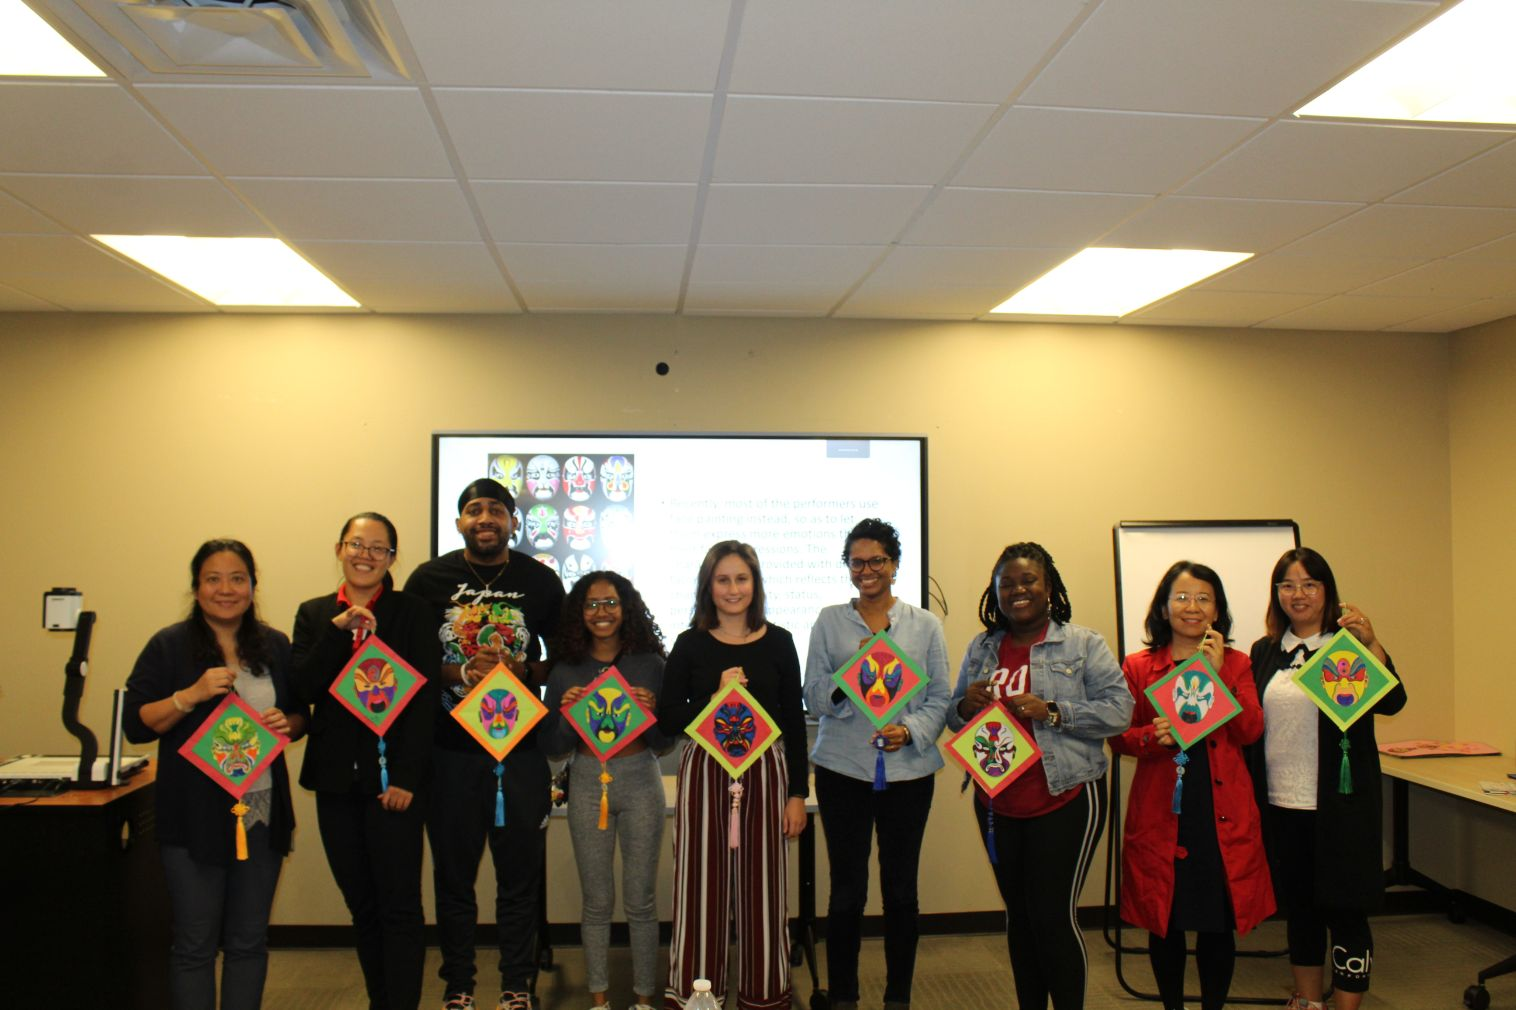 The students and CIT Visiting Scholars pose with their colored opera masks in a group picture.